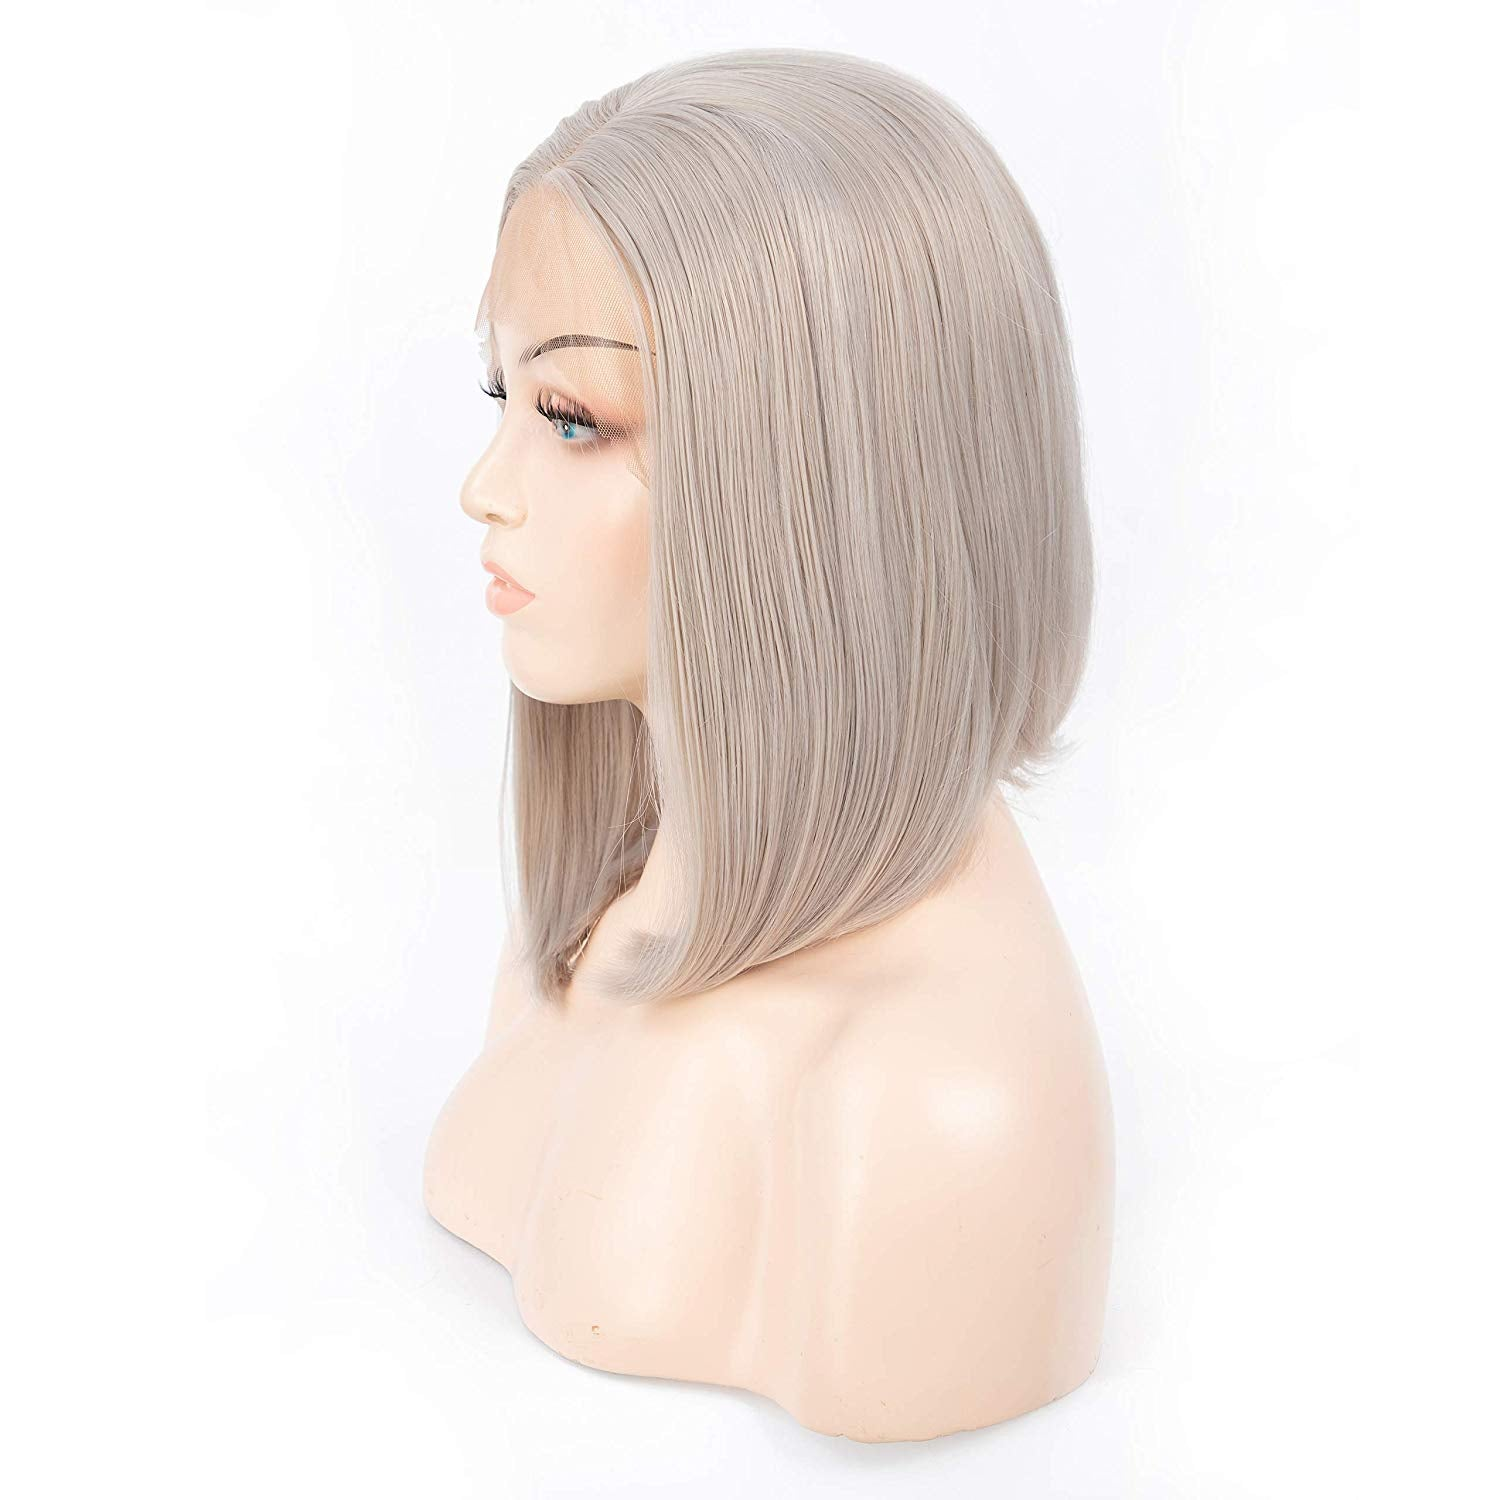 12 Inch Short Straight Silver Synthetic Wig for Women Middle Part Cosplay Glueless Wig